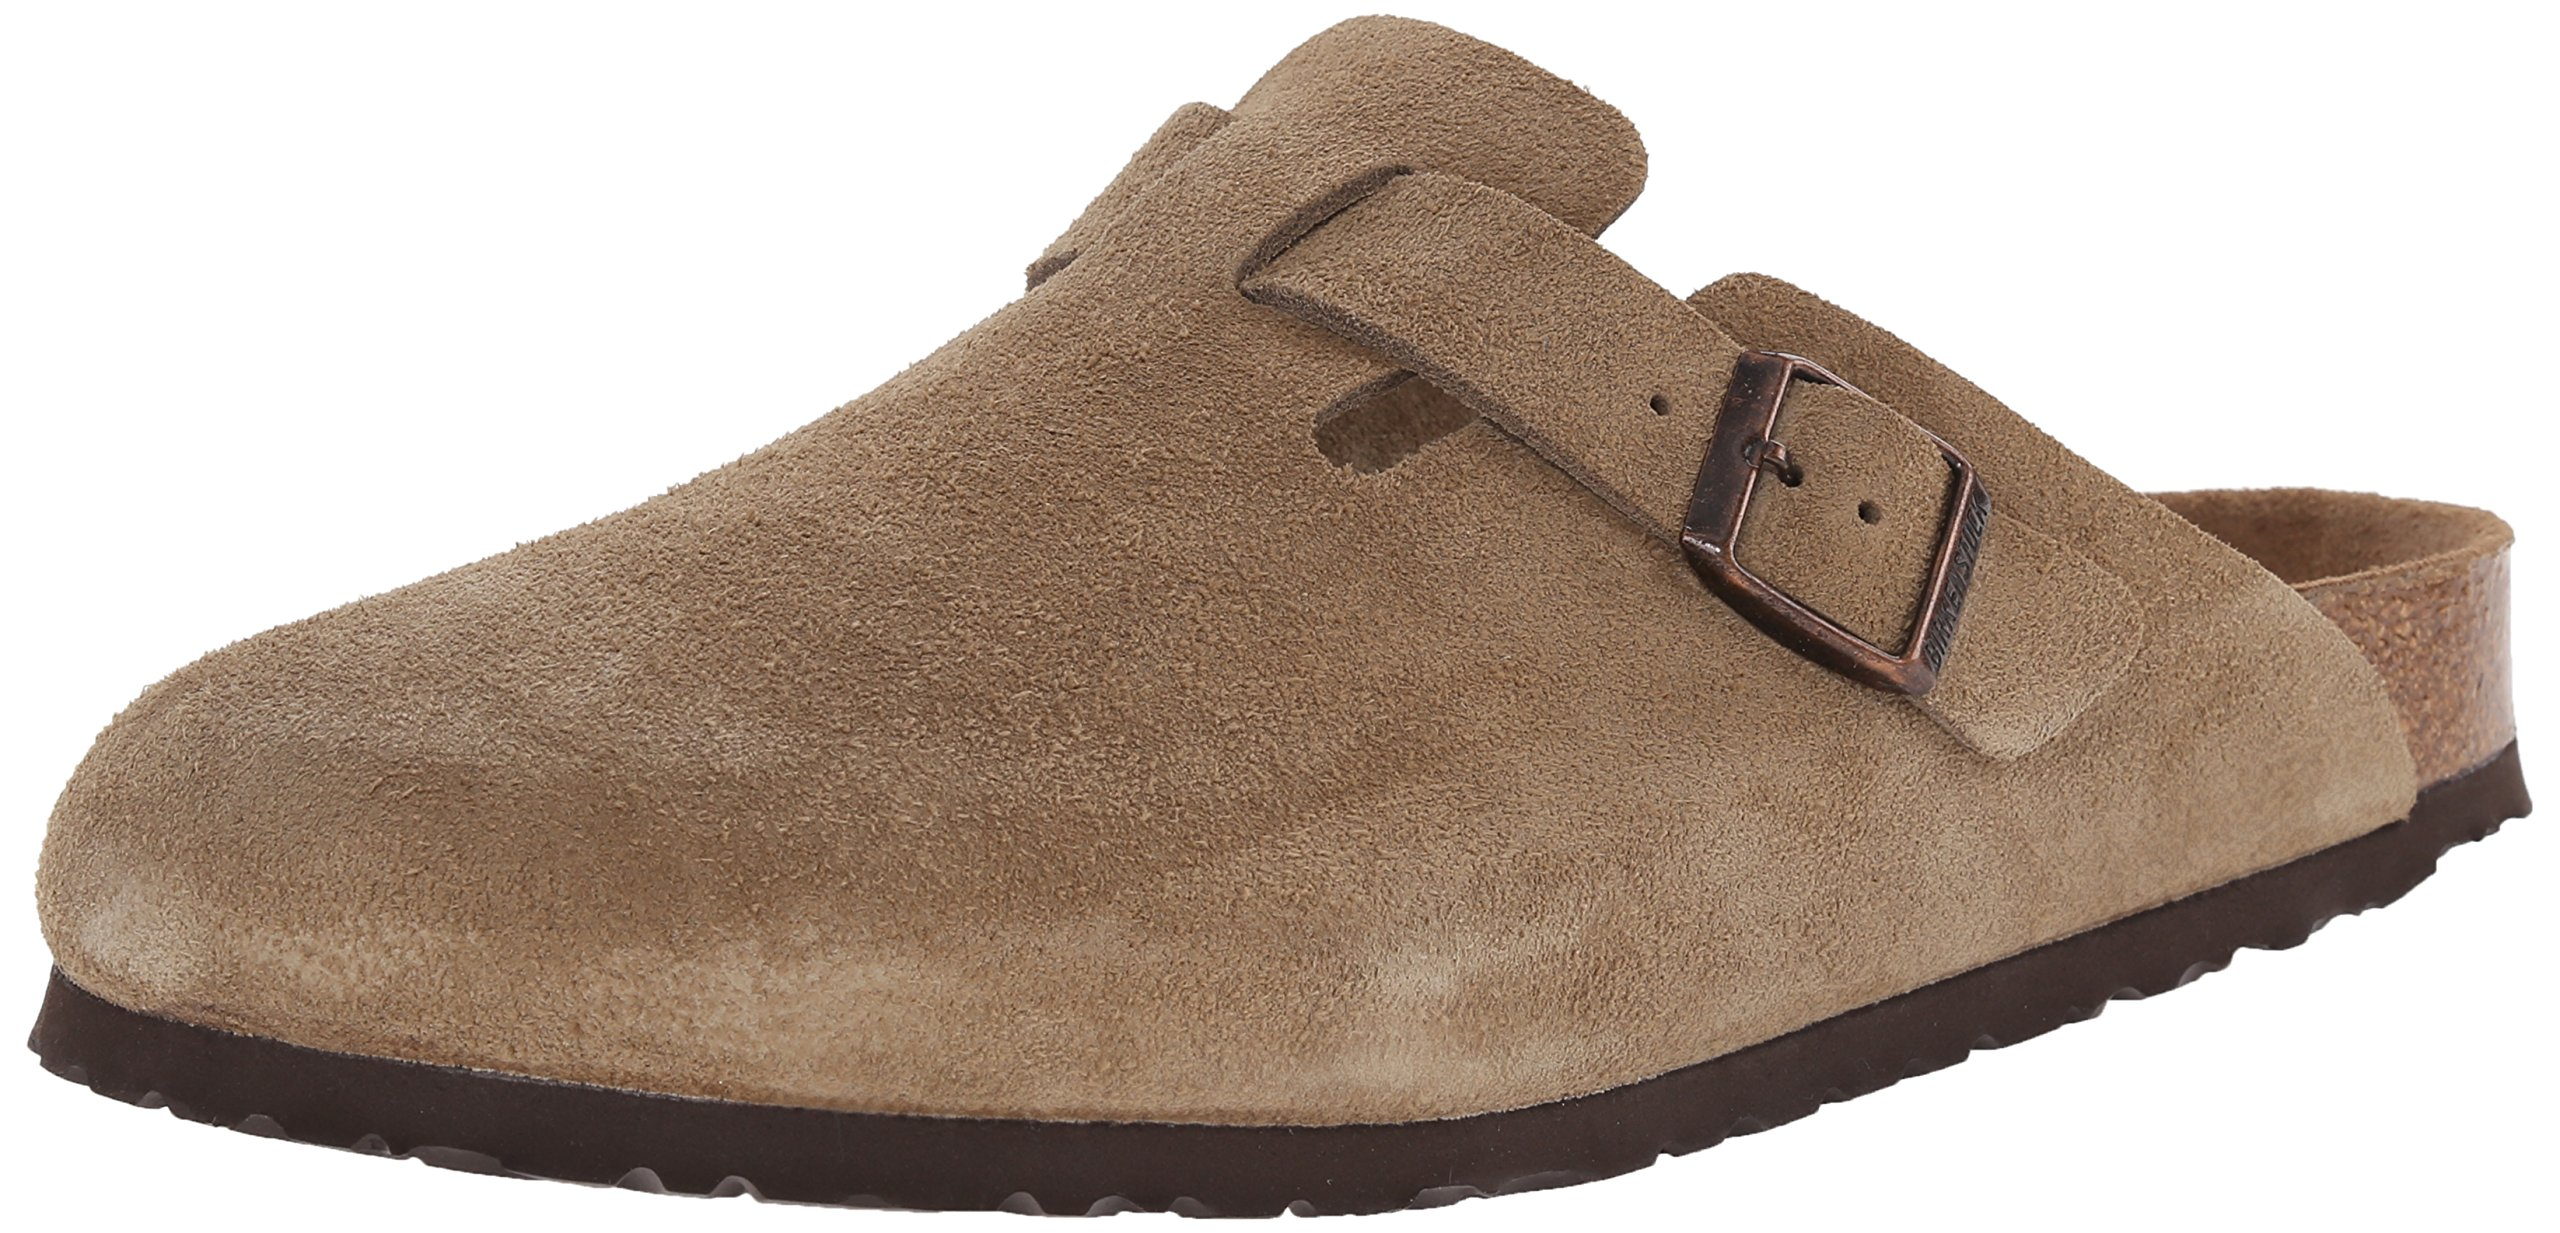 Birkenstock Unisex Boston Soft Footbed, Taupe Suede, 44 N EU by Birkenstock